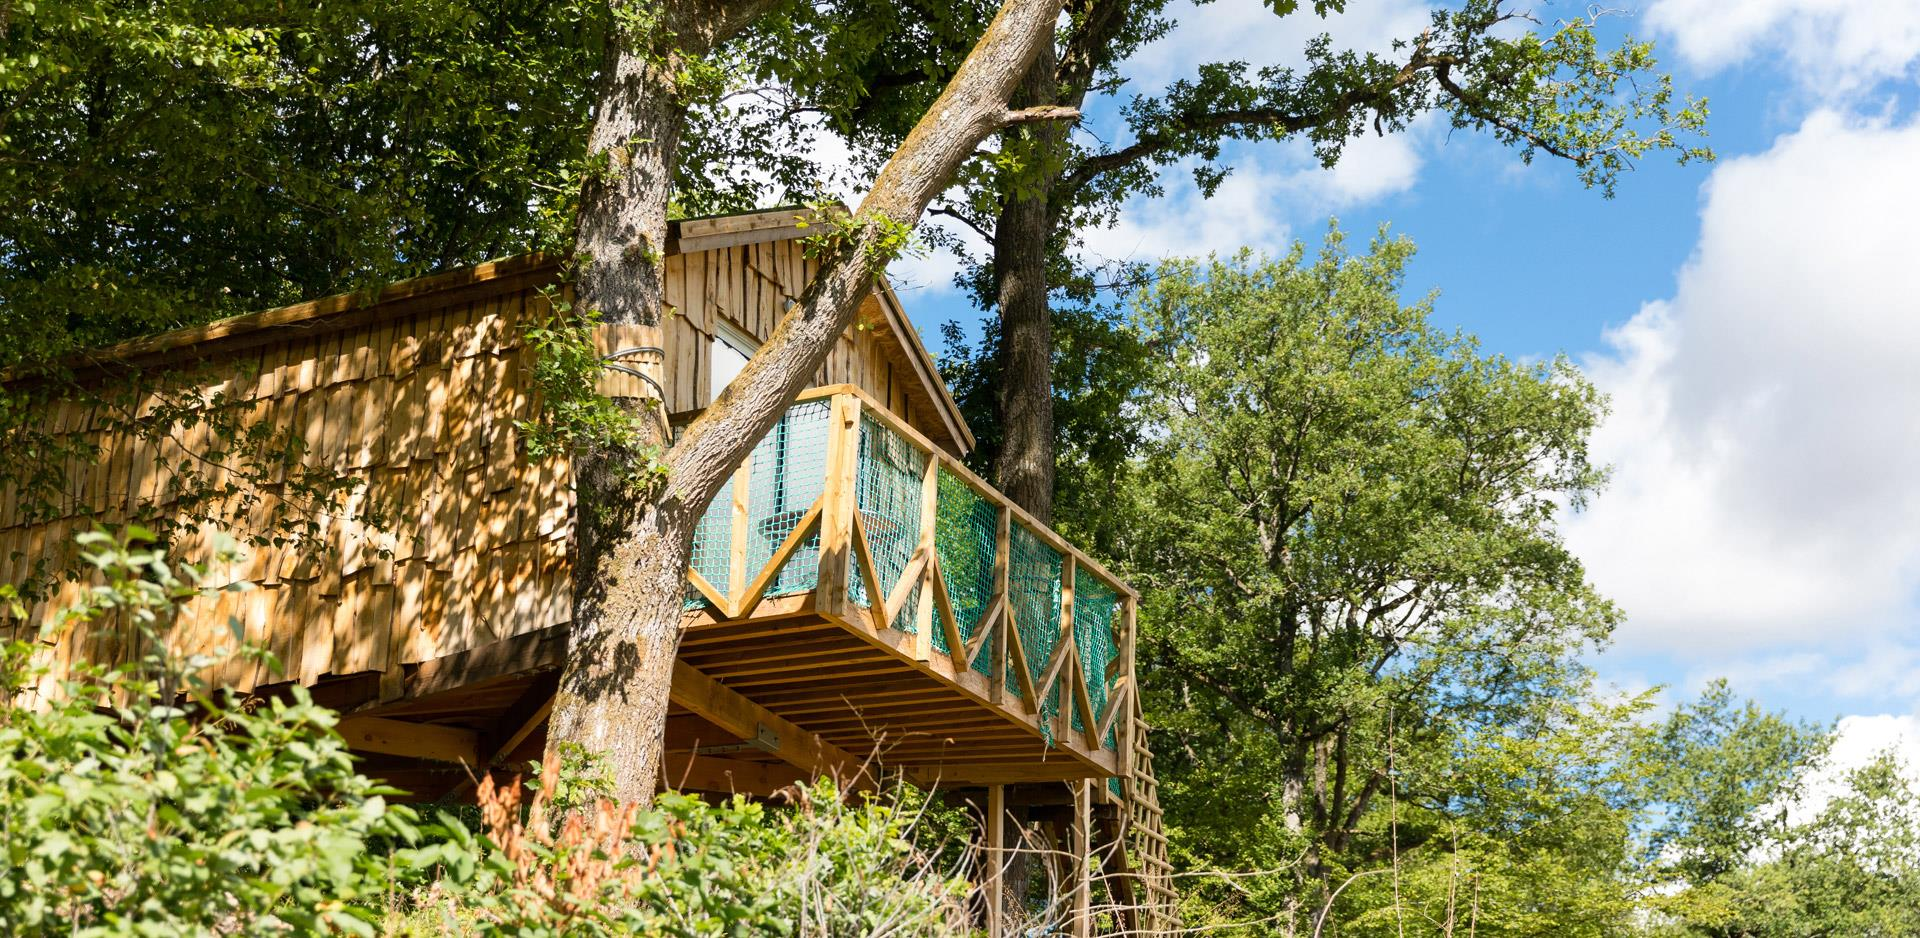 Rental of atypical accommodations in the Haut-Rhin: view of the atypical Suspended in the Trees Hut Robin Hood